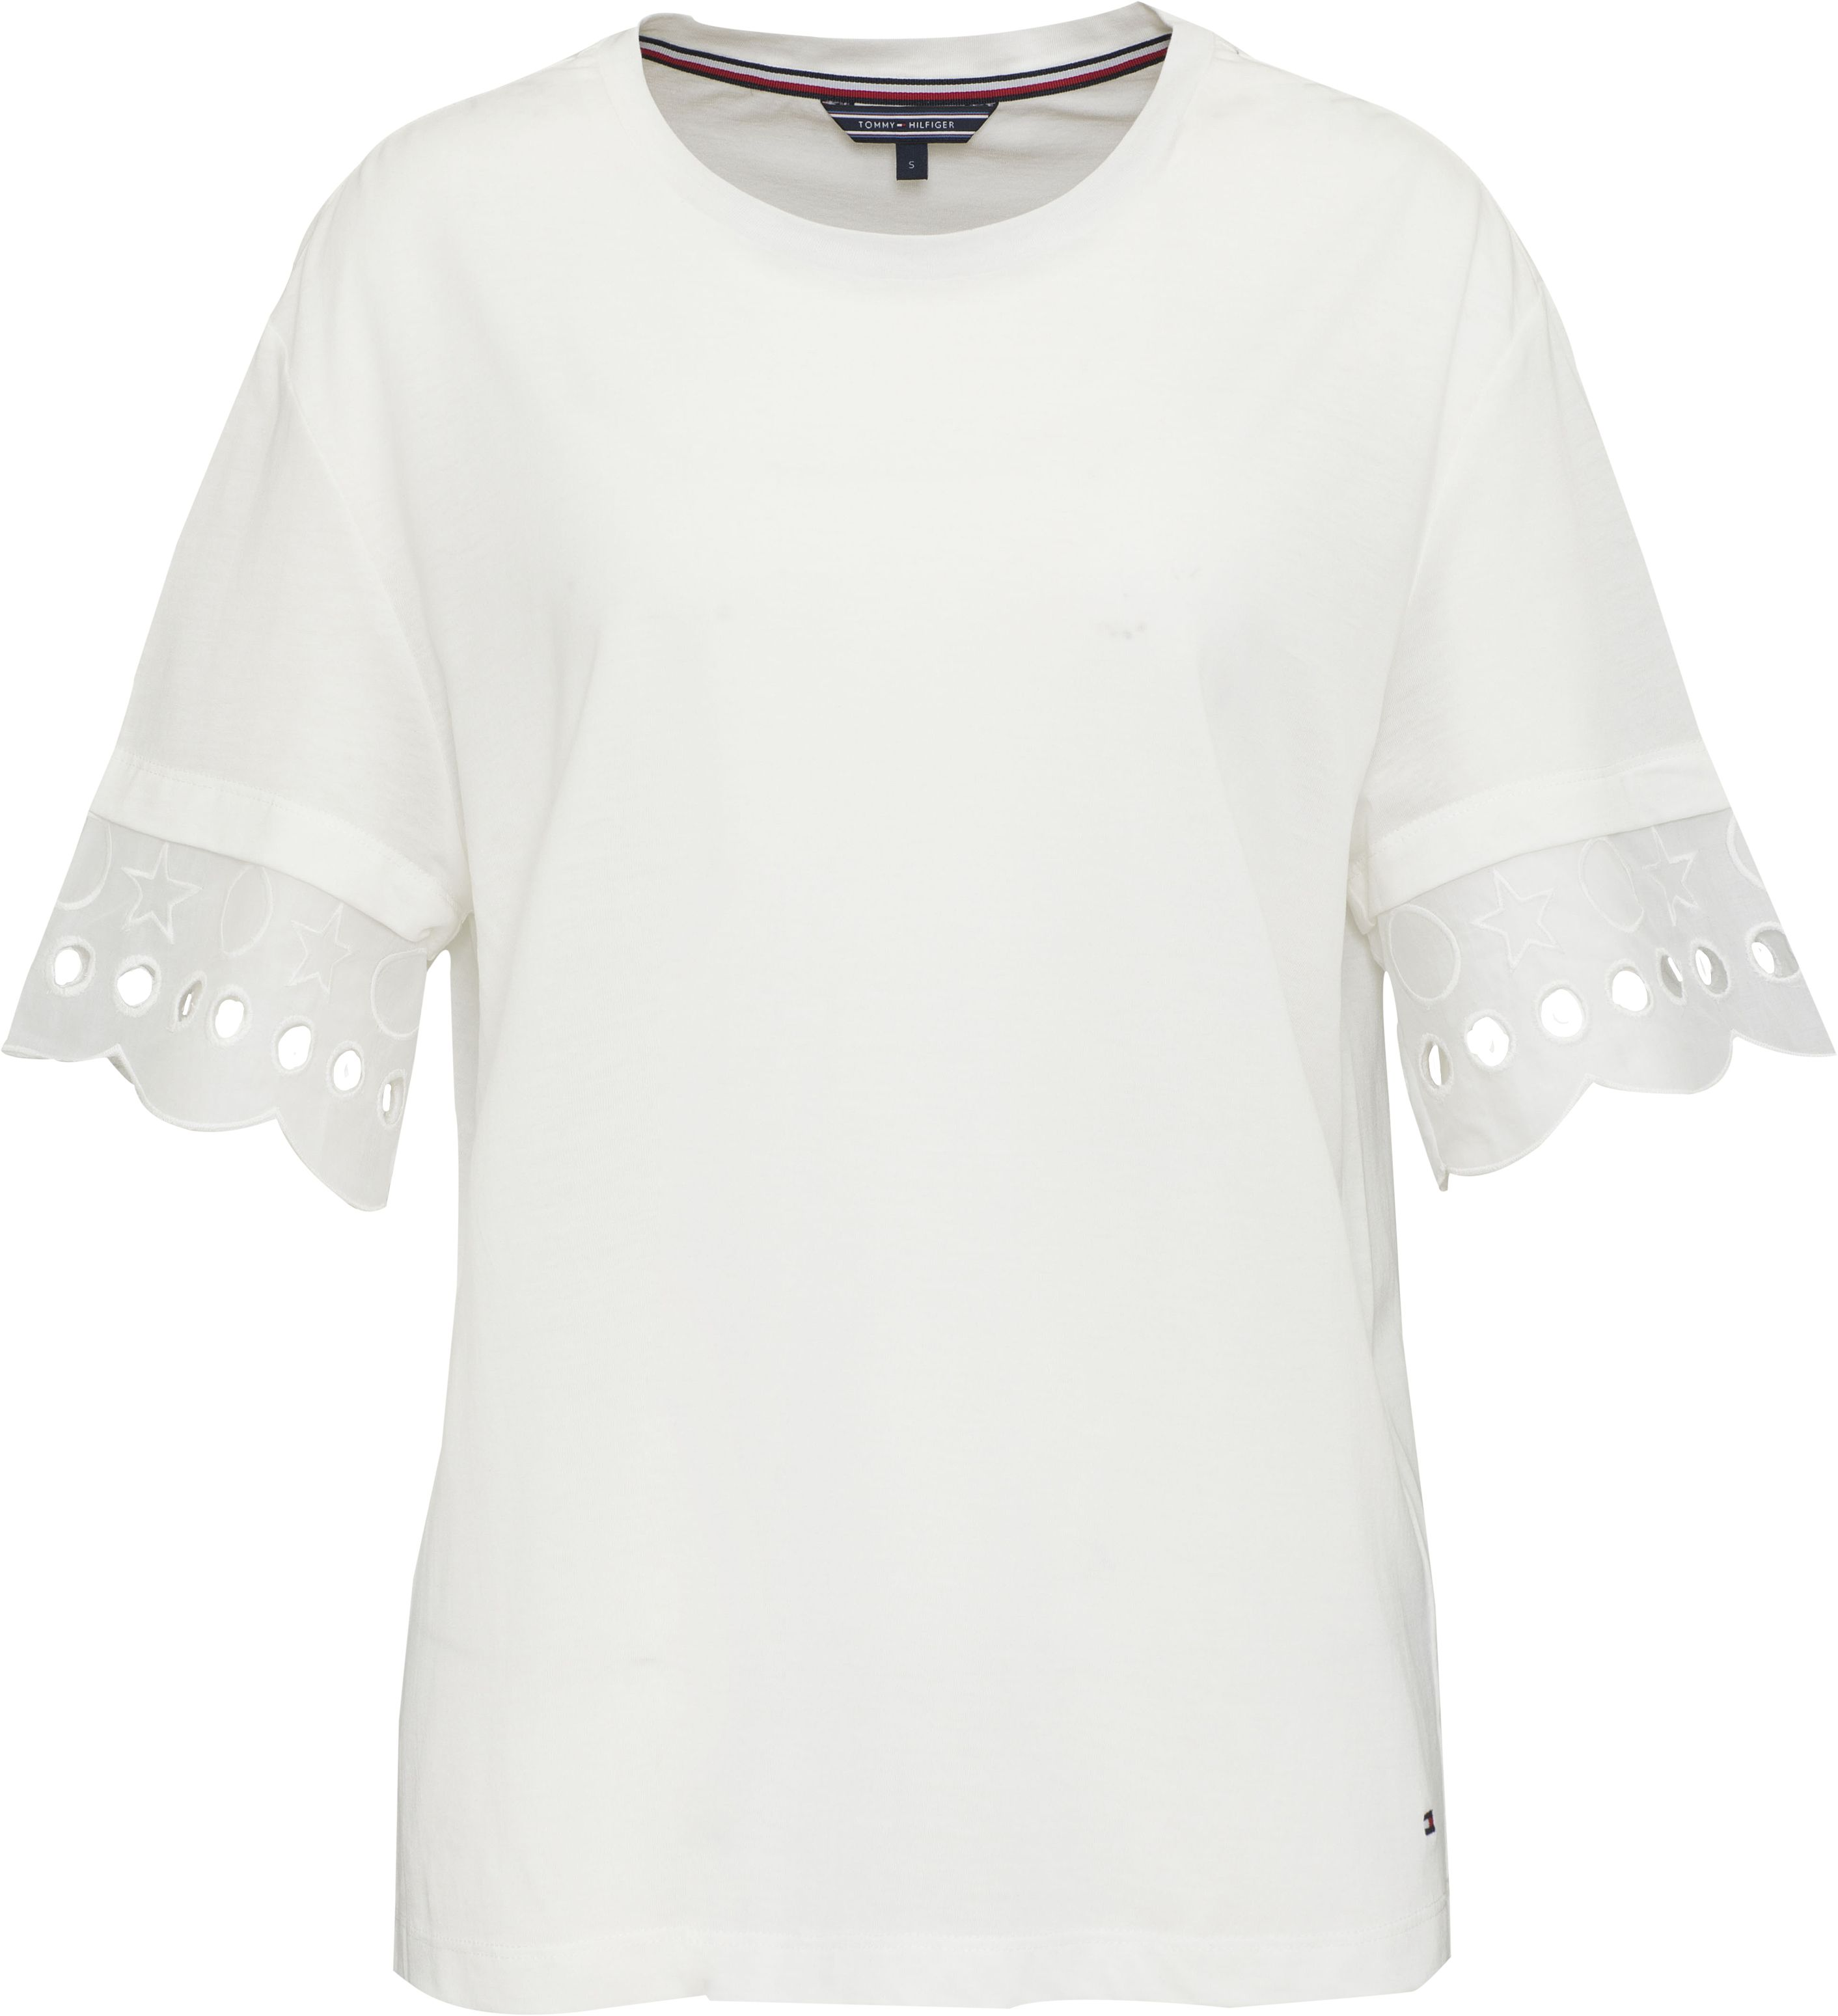 Tommy Hilfiger Abner Lace Sleeve Top, White